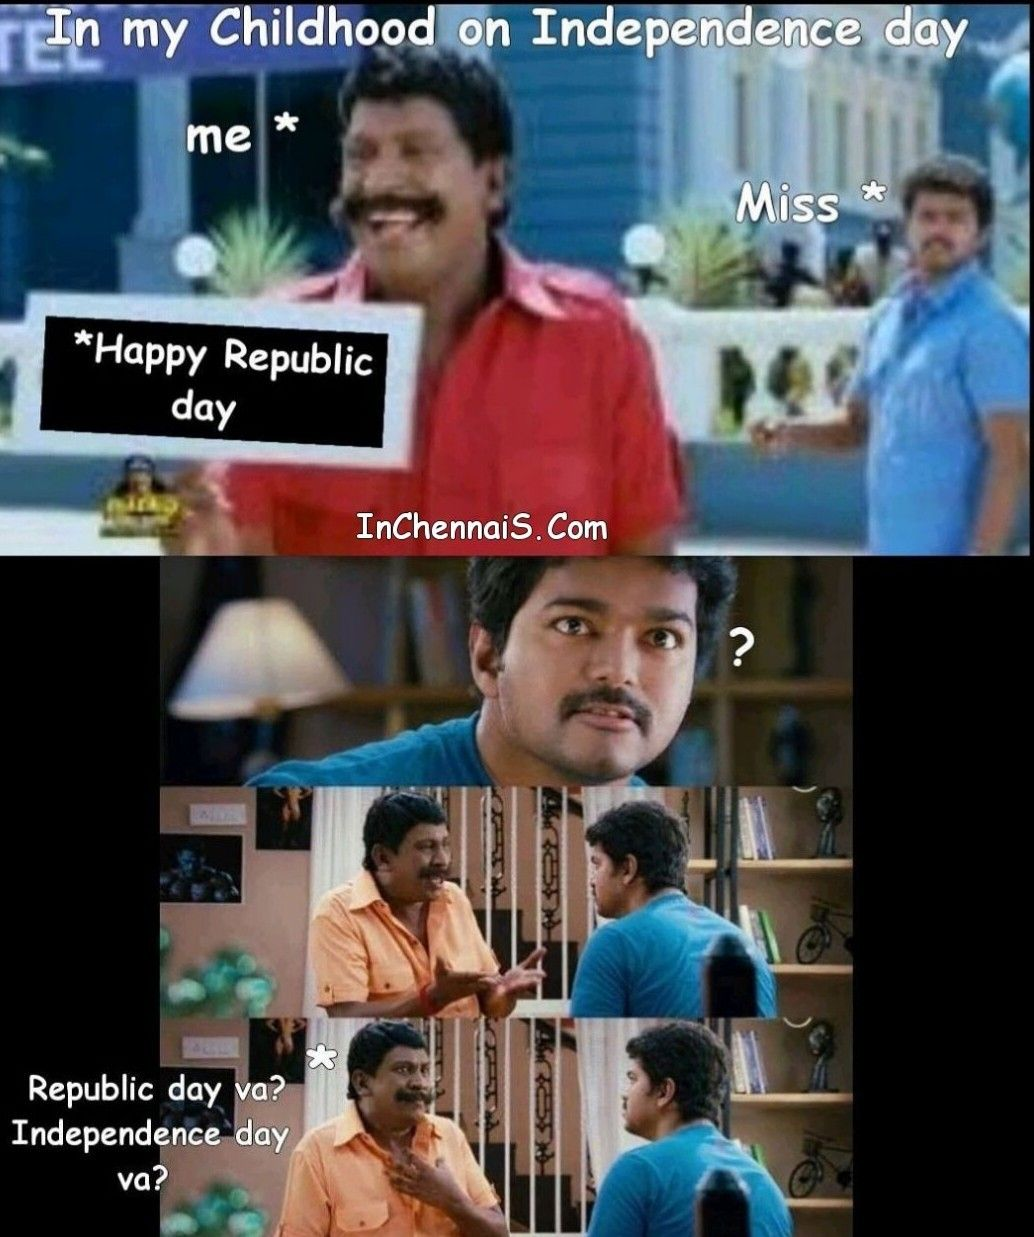 Me On Independence Day In My Childhood Inchennais Com Happy Independence Day Happy Independence Republic Day